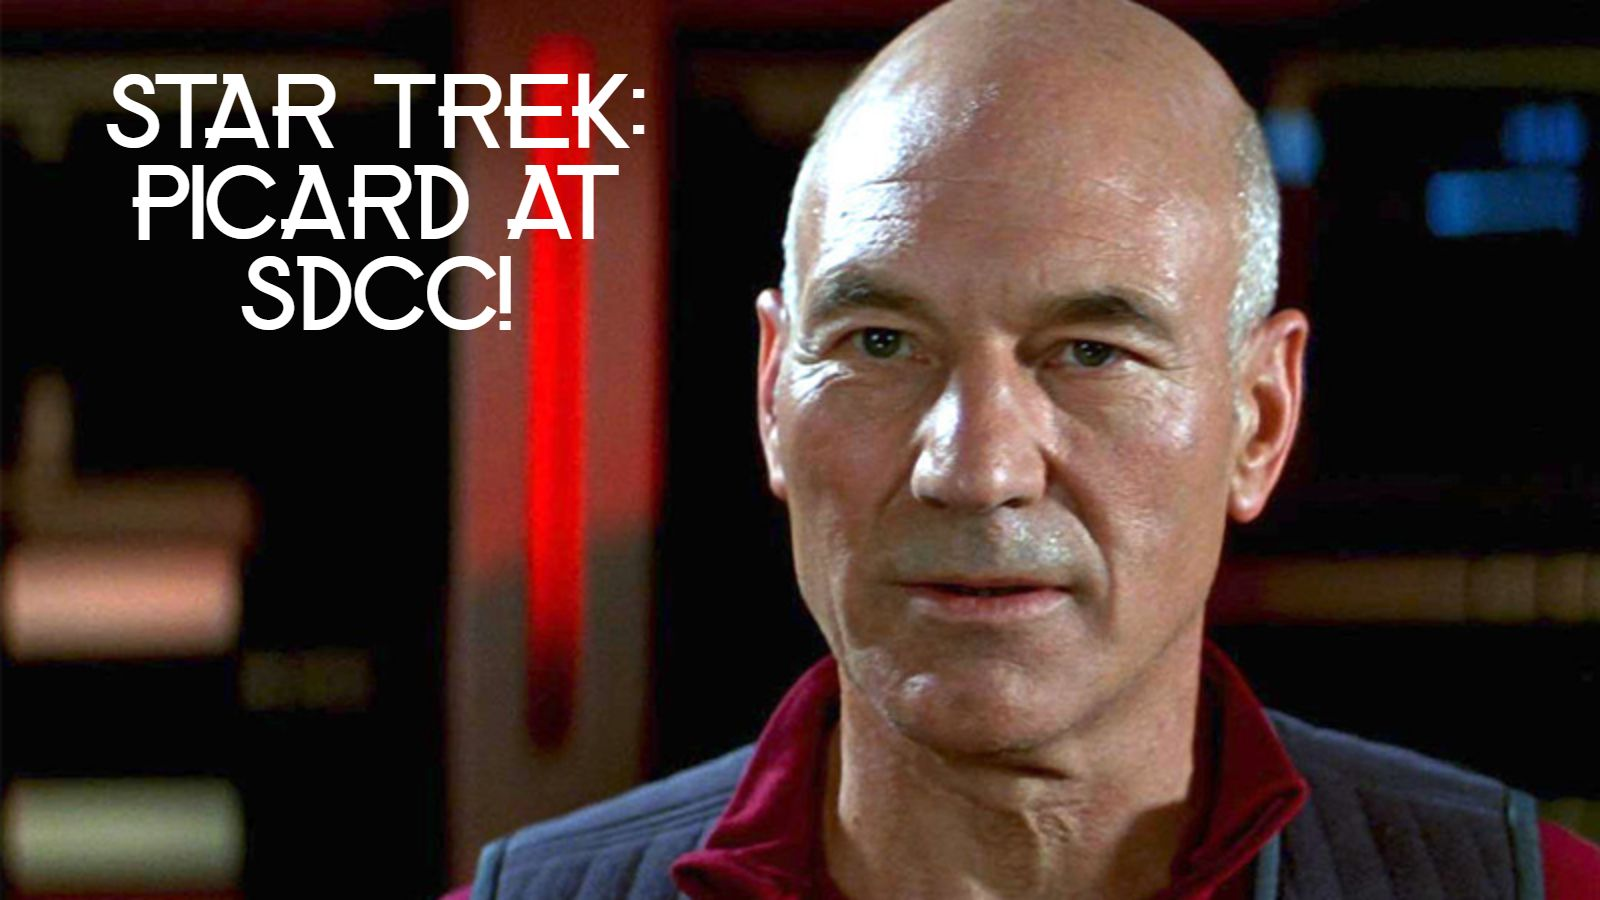 Star Trek: Picard And Discovery Will Be At The Head Of CBS's SDCC Panel